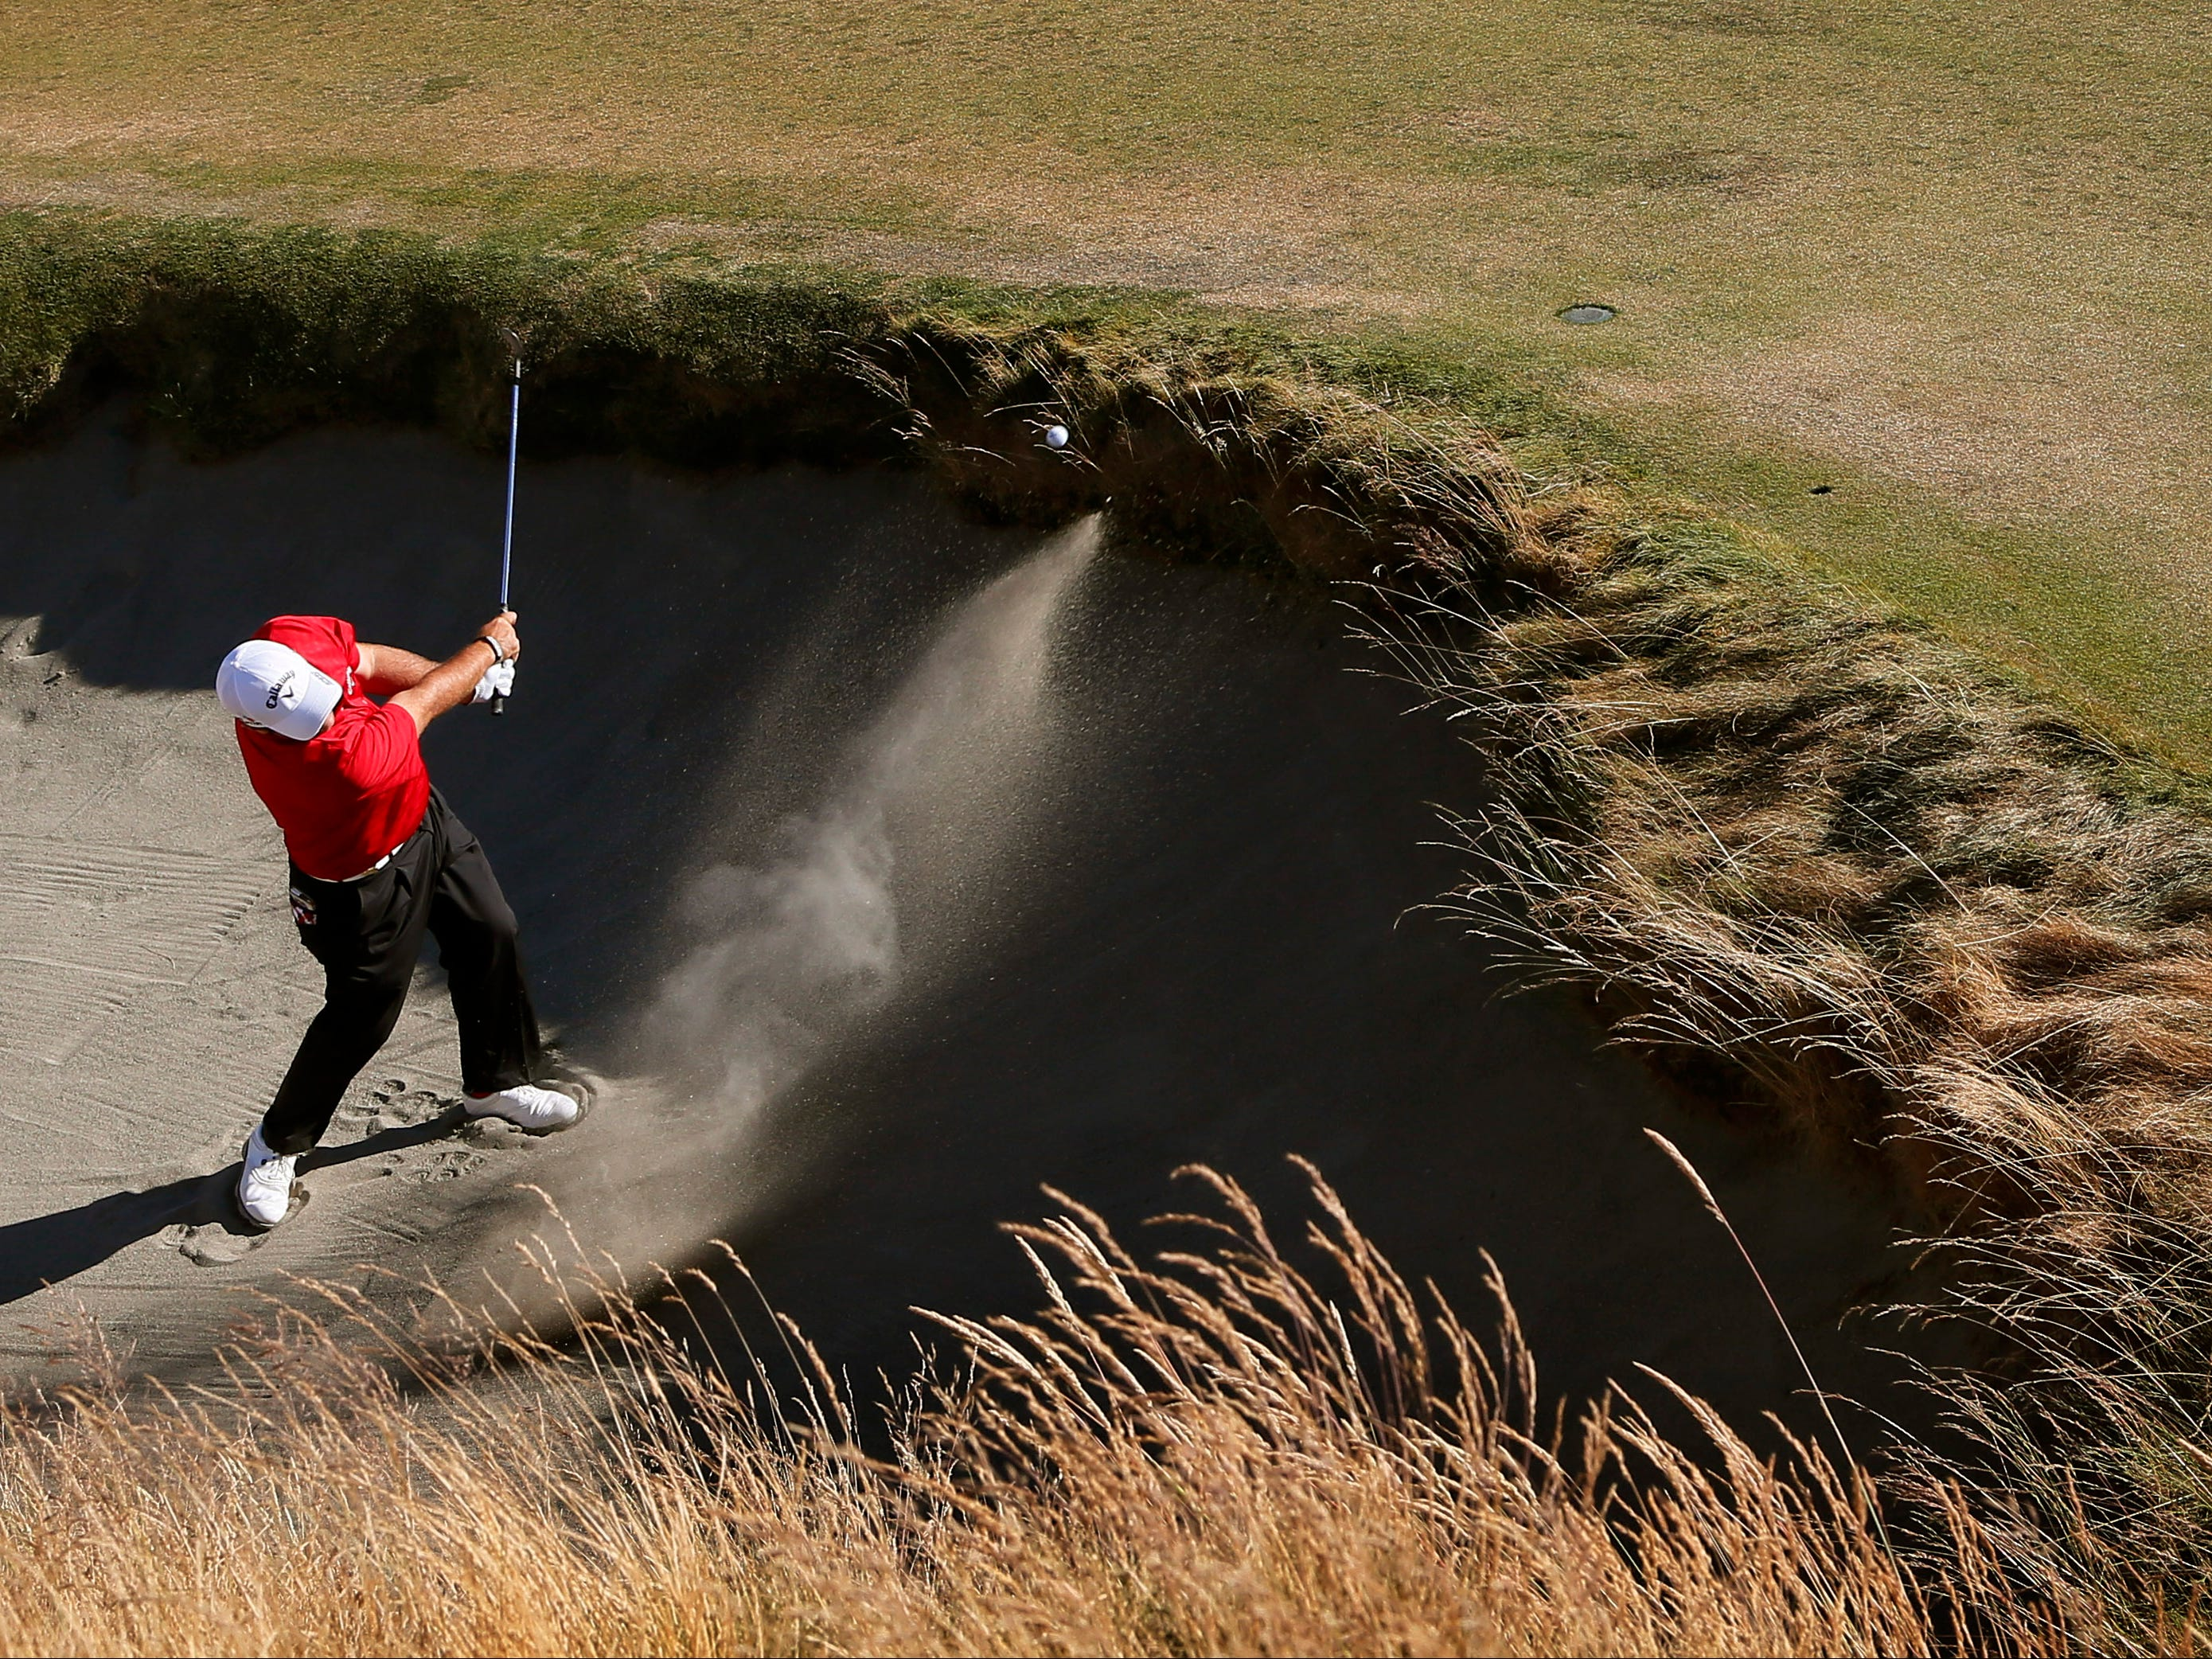 Patrick Reed hits out of the bunker on the 10th hole during the second round of the U.S. Open golf tournament at Chambers Bay on Friday, June 19, 2015 in University Place, Wash. (AP Photo/Matt York)